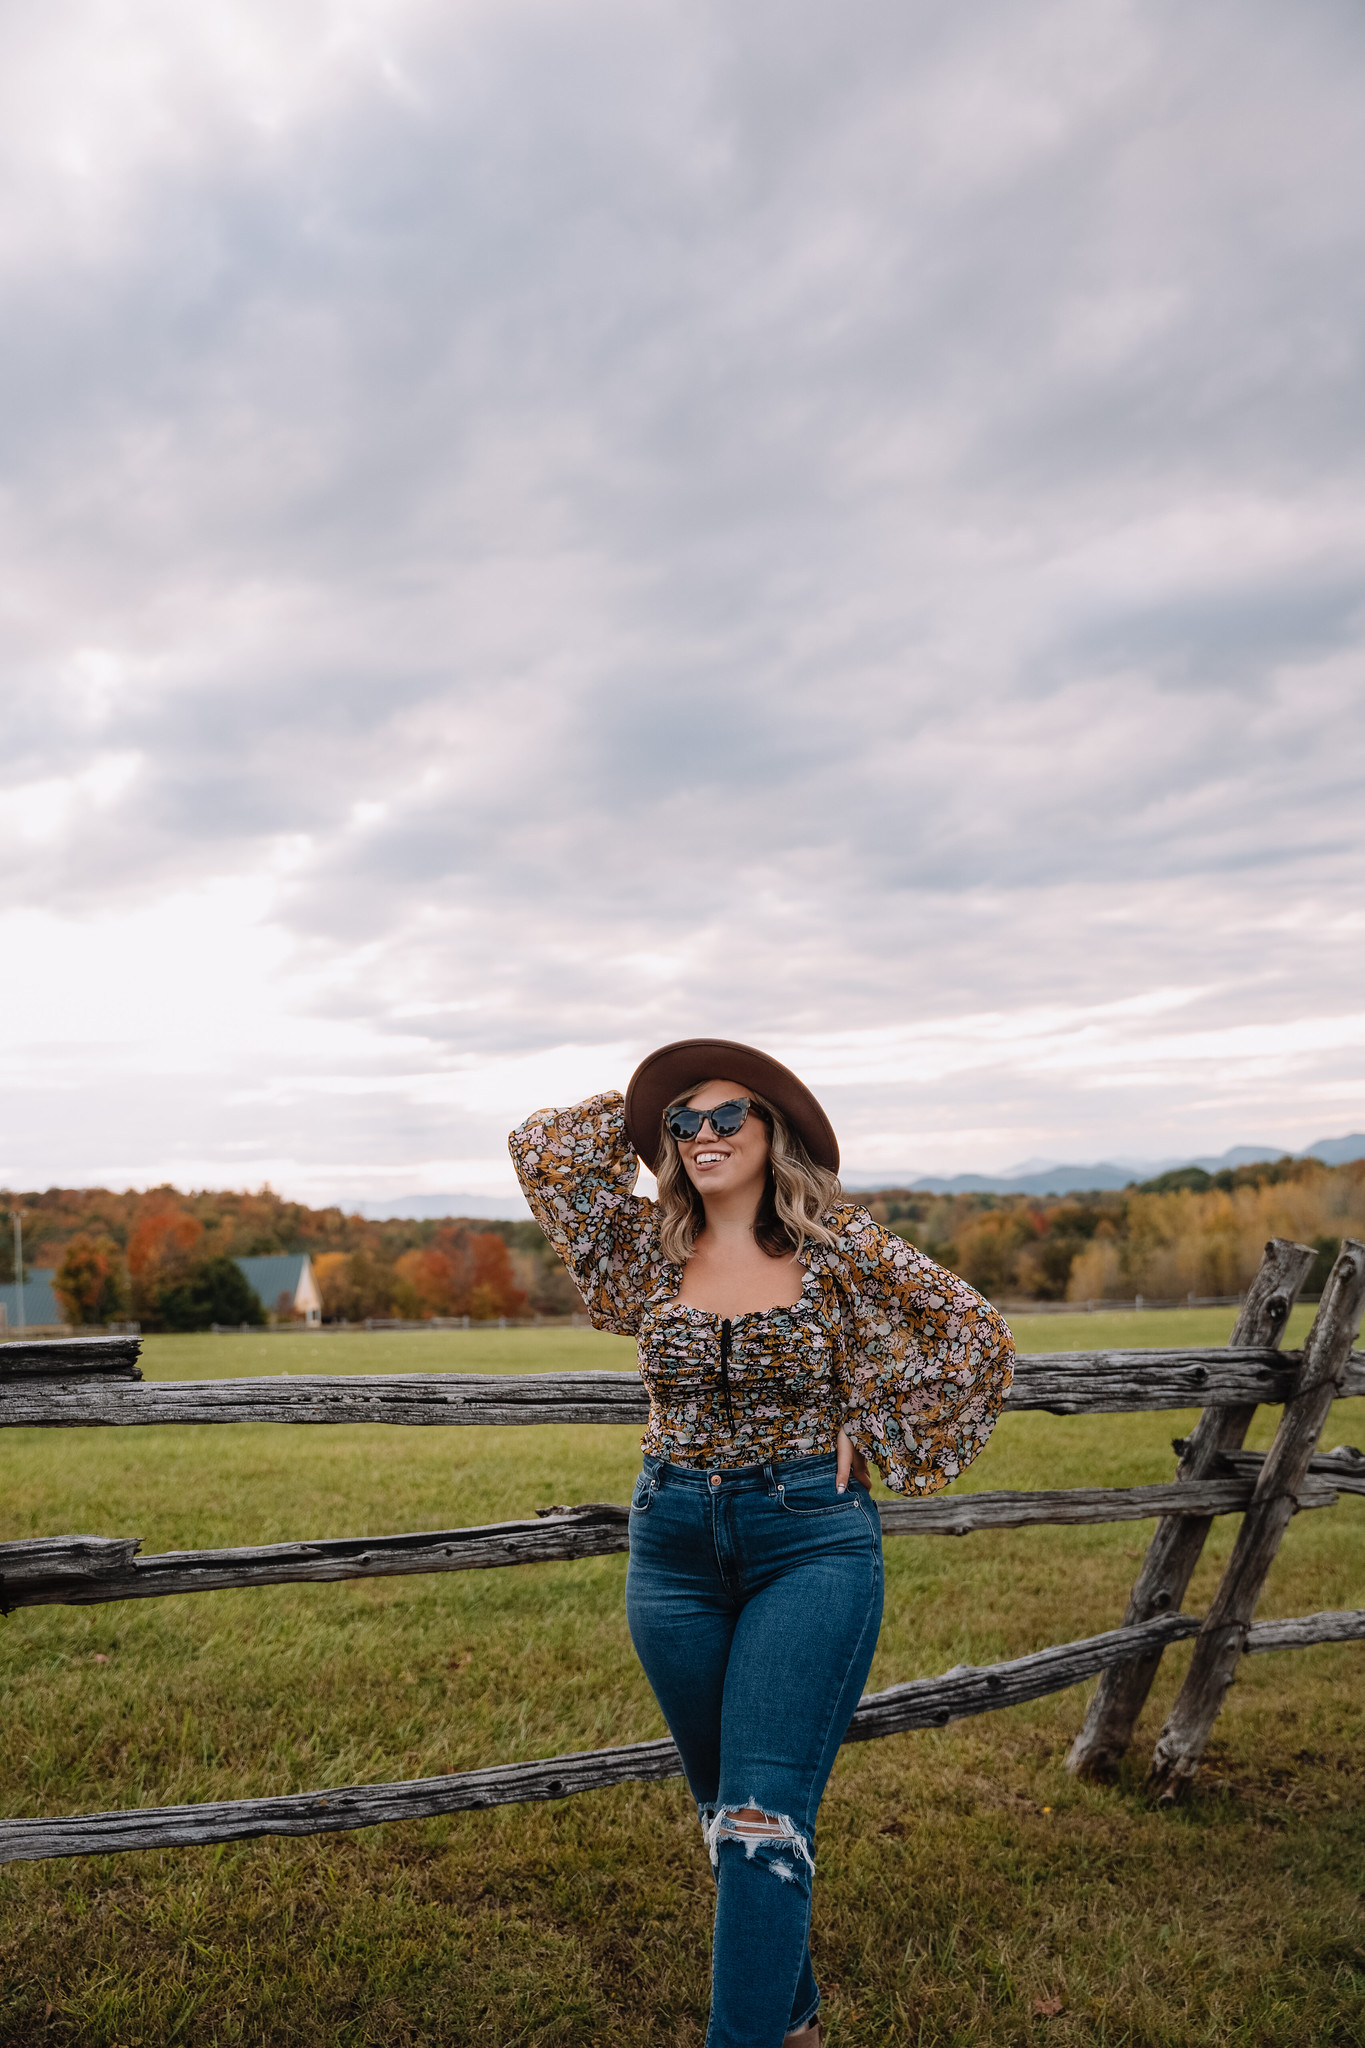 Shelburne VT | My Complete Vermont Fall Travel Guide: What to See, Do & Eat | Ultimate Fall Guide to Vermont | 5 Day Vermont Road Trip | Fall Foliage Road Trip Guide